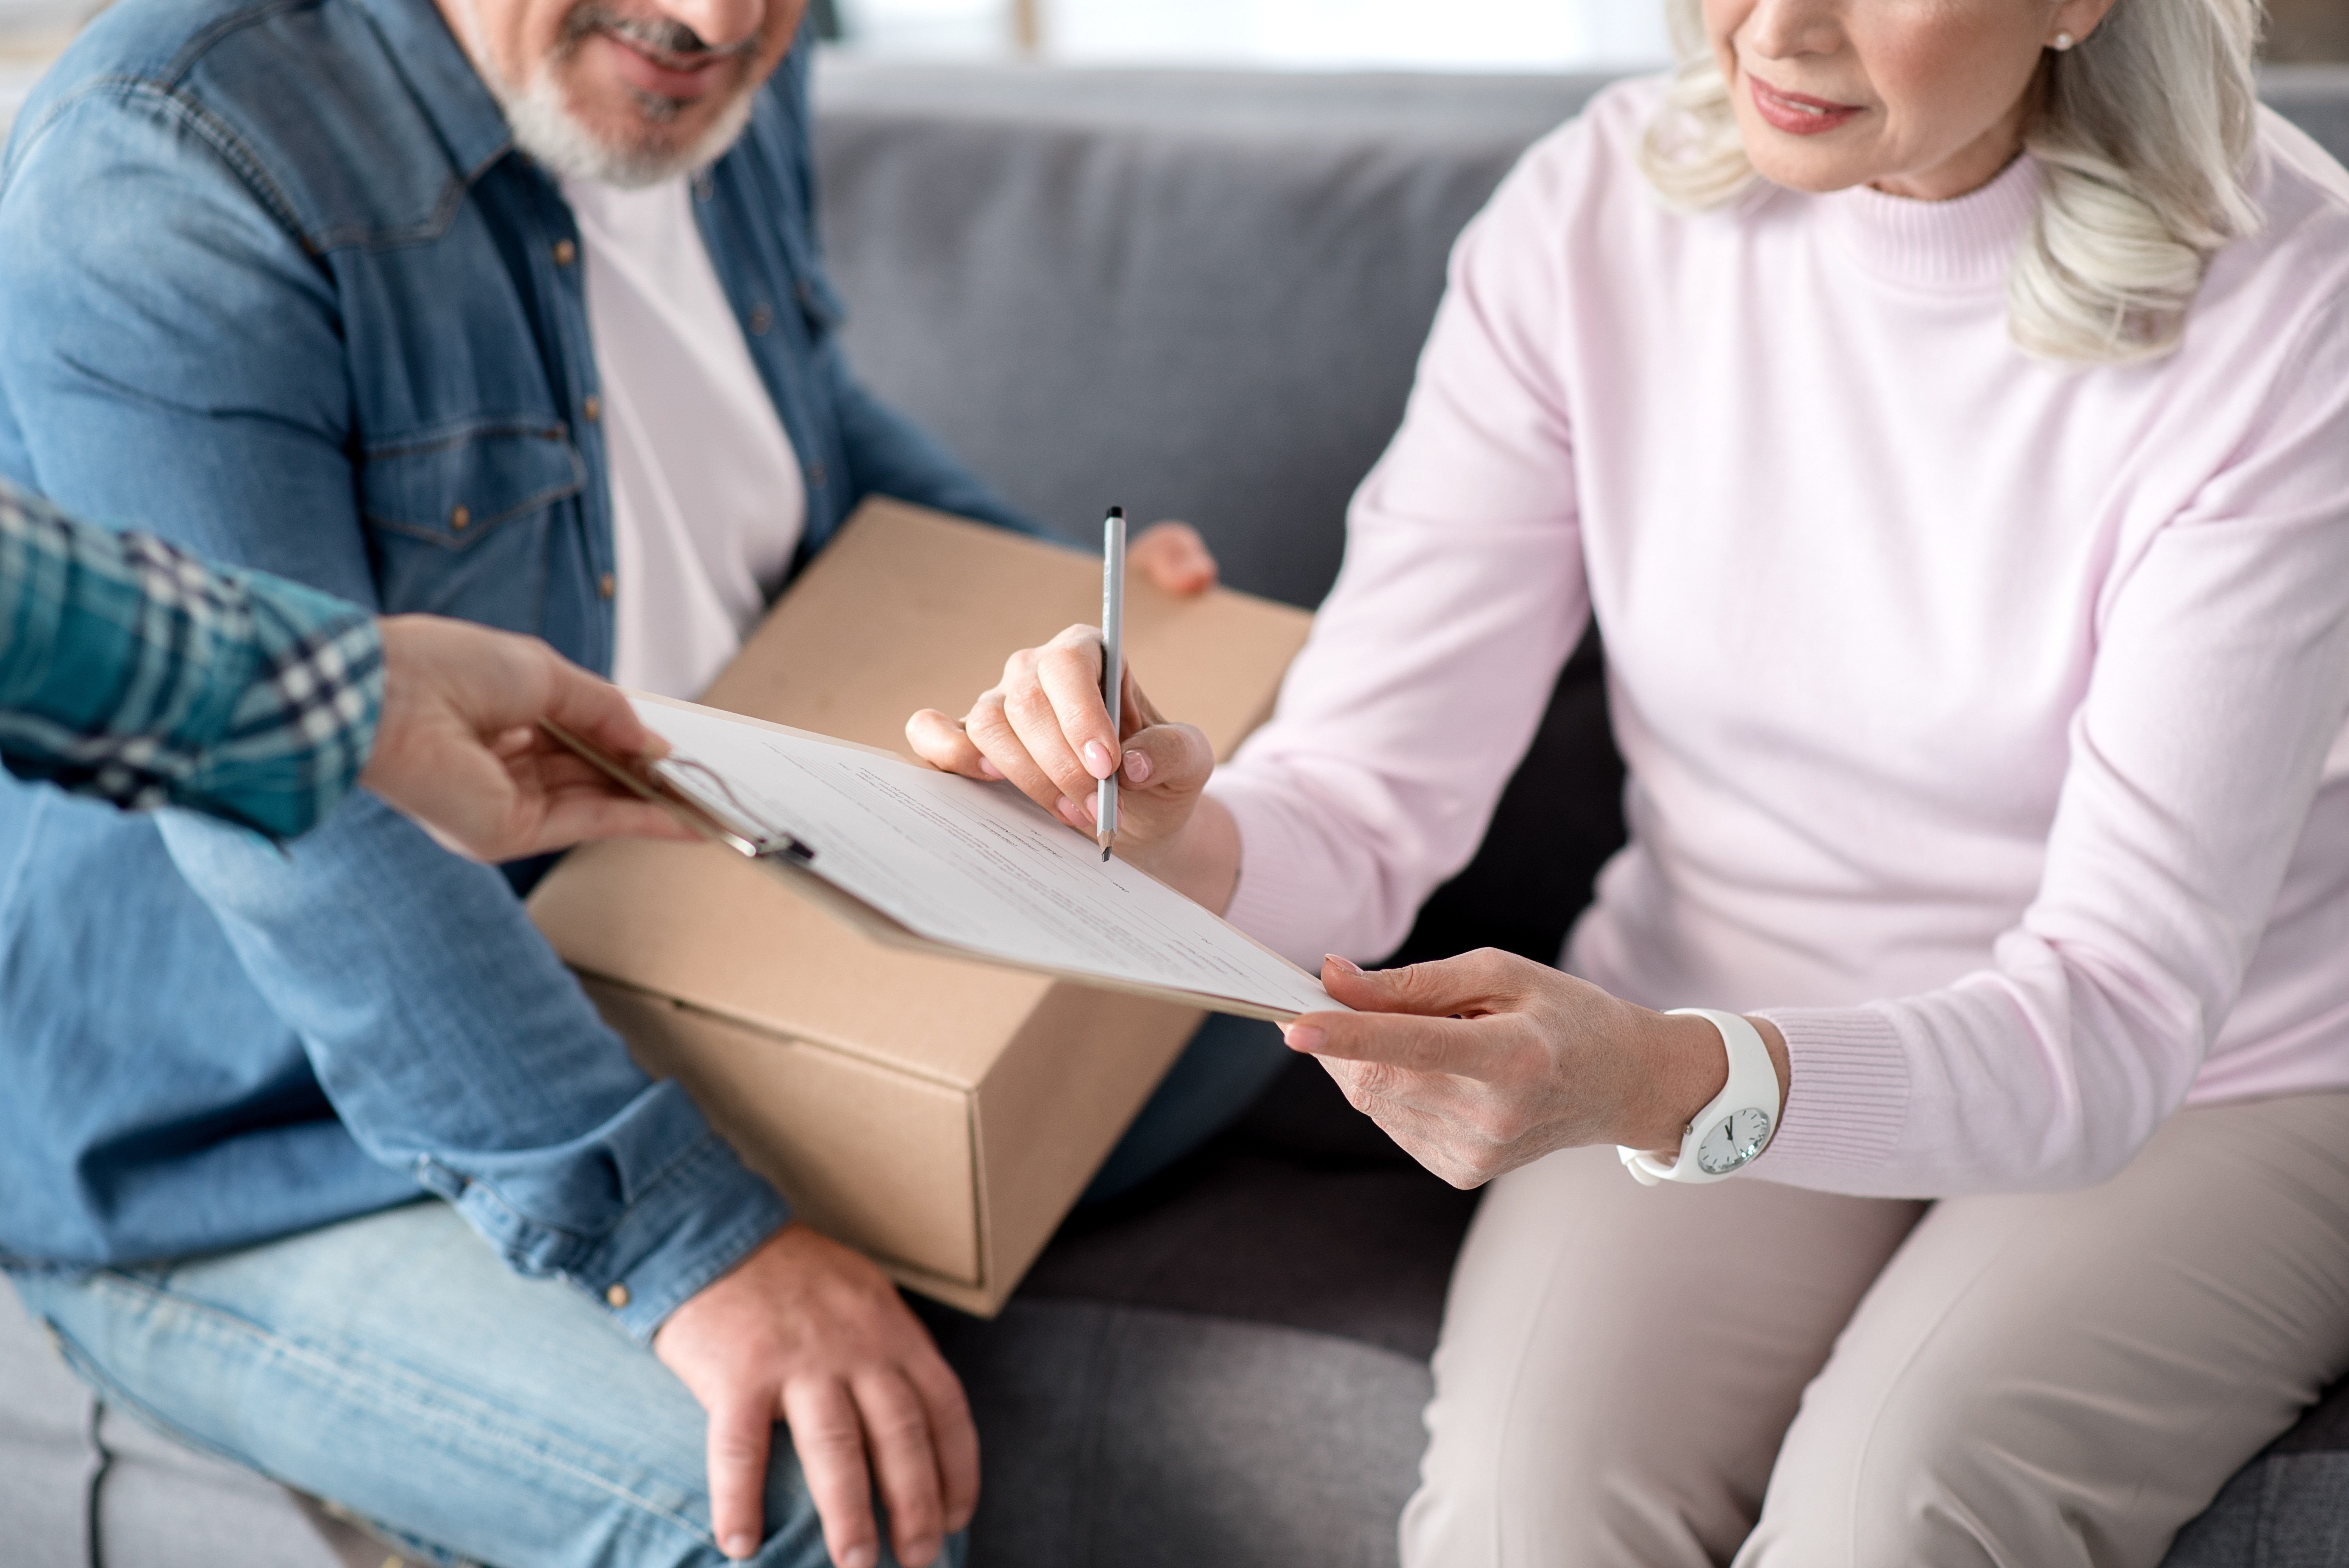 elderly couple signing for package